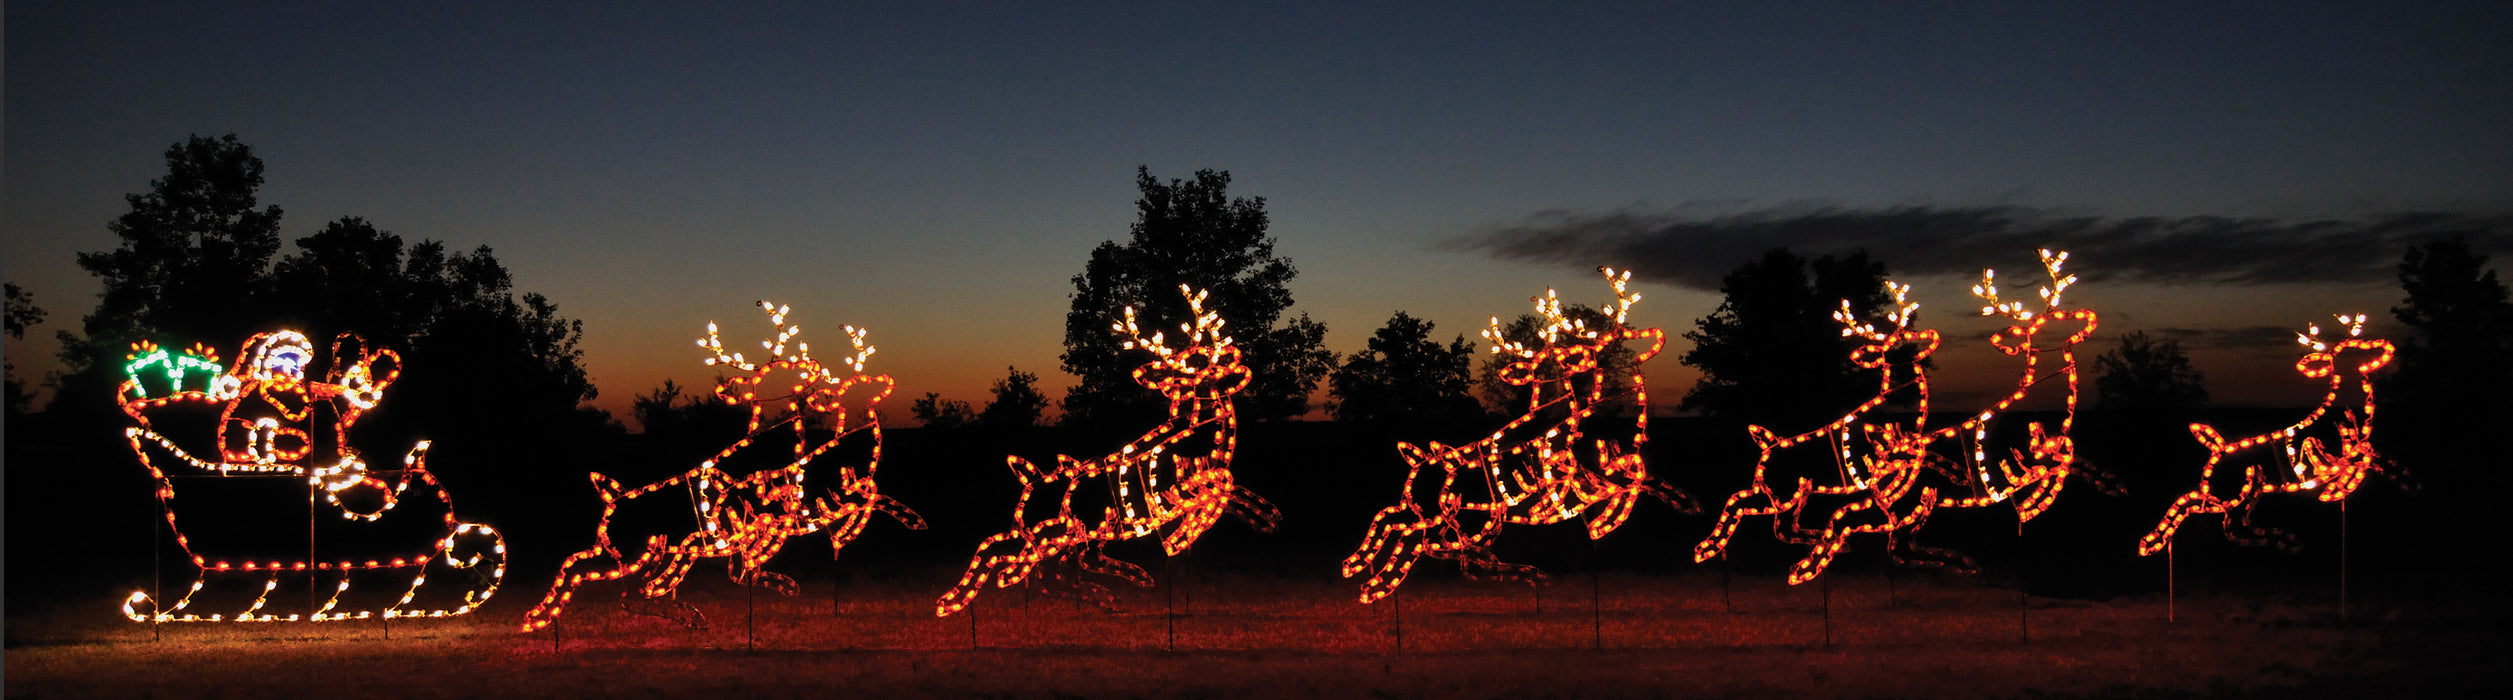 Animated Lead Reindeer C7 LED lights motif,  Christmas, holiday decoration,  professional artist Gene V. Dougherty